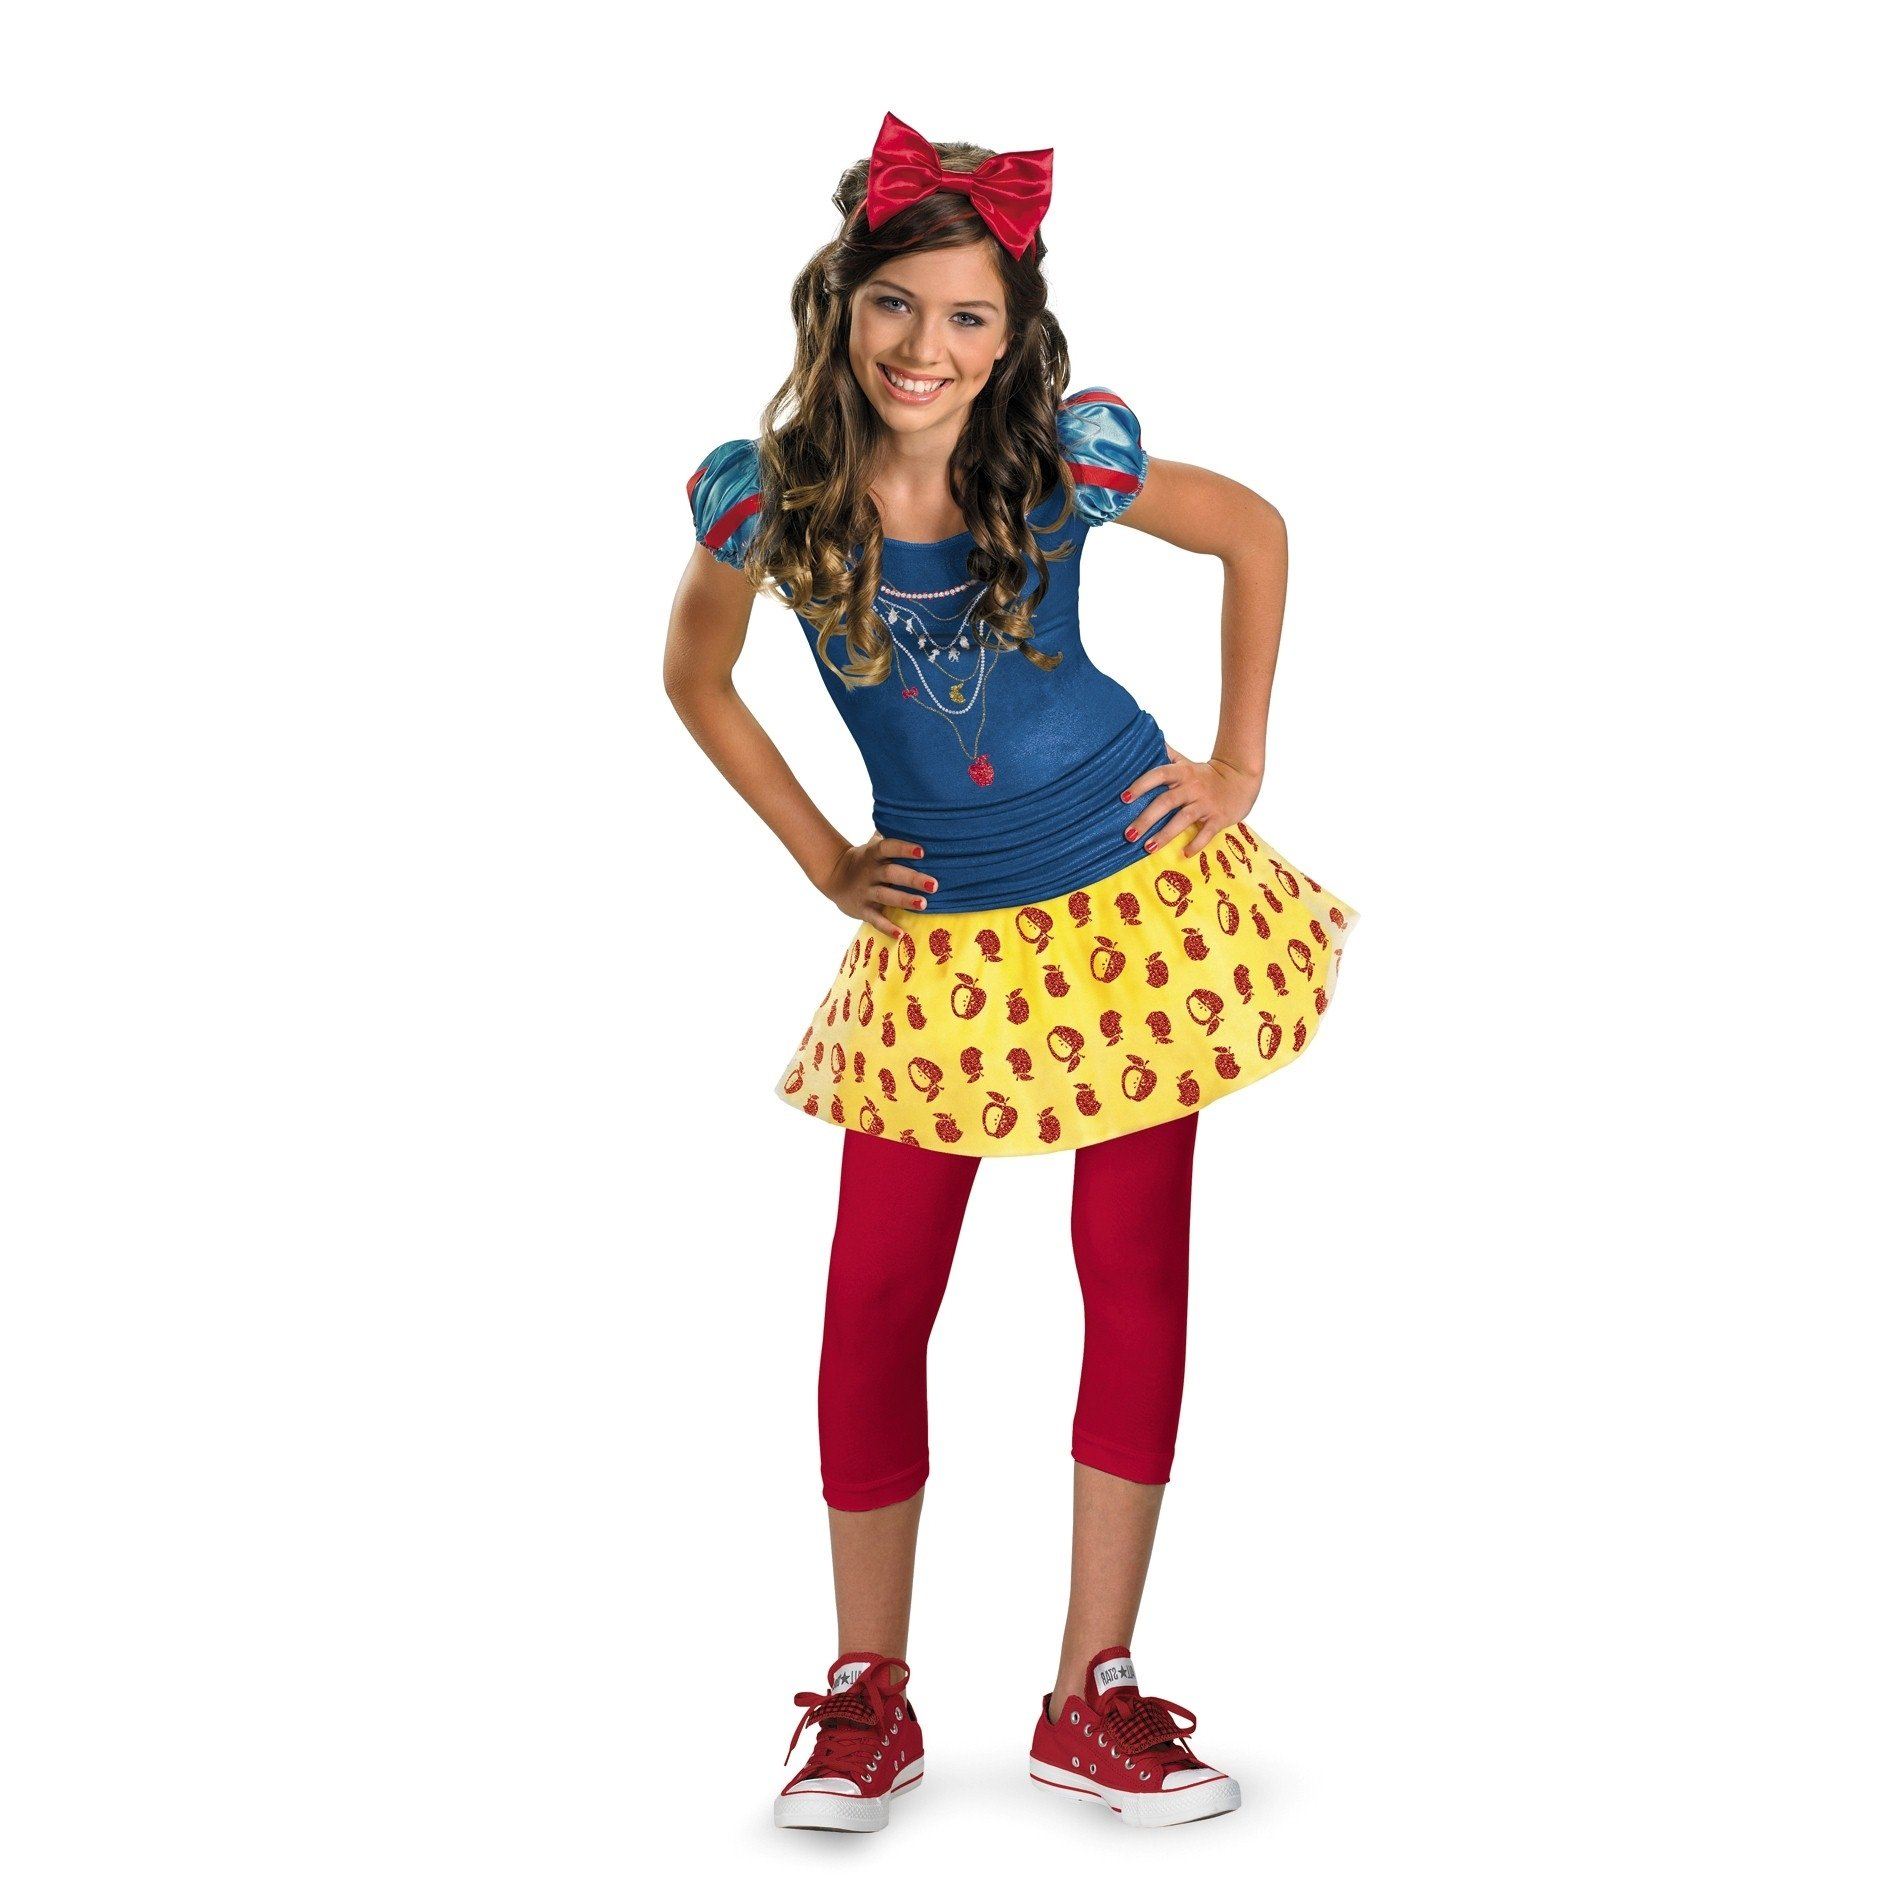 10 most recommended cool halloween costume ideas for women 59 ideas for halloween costumes for tweens